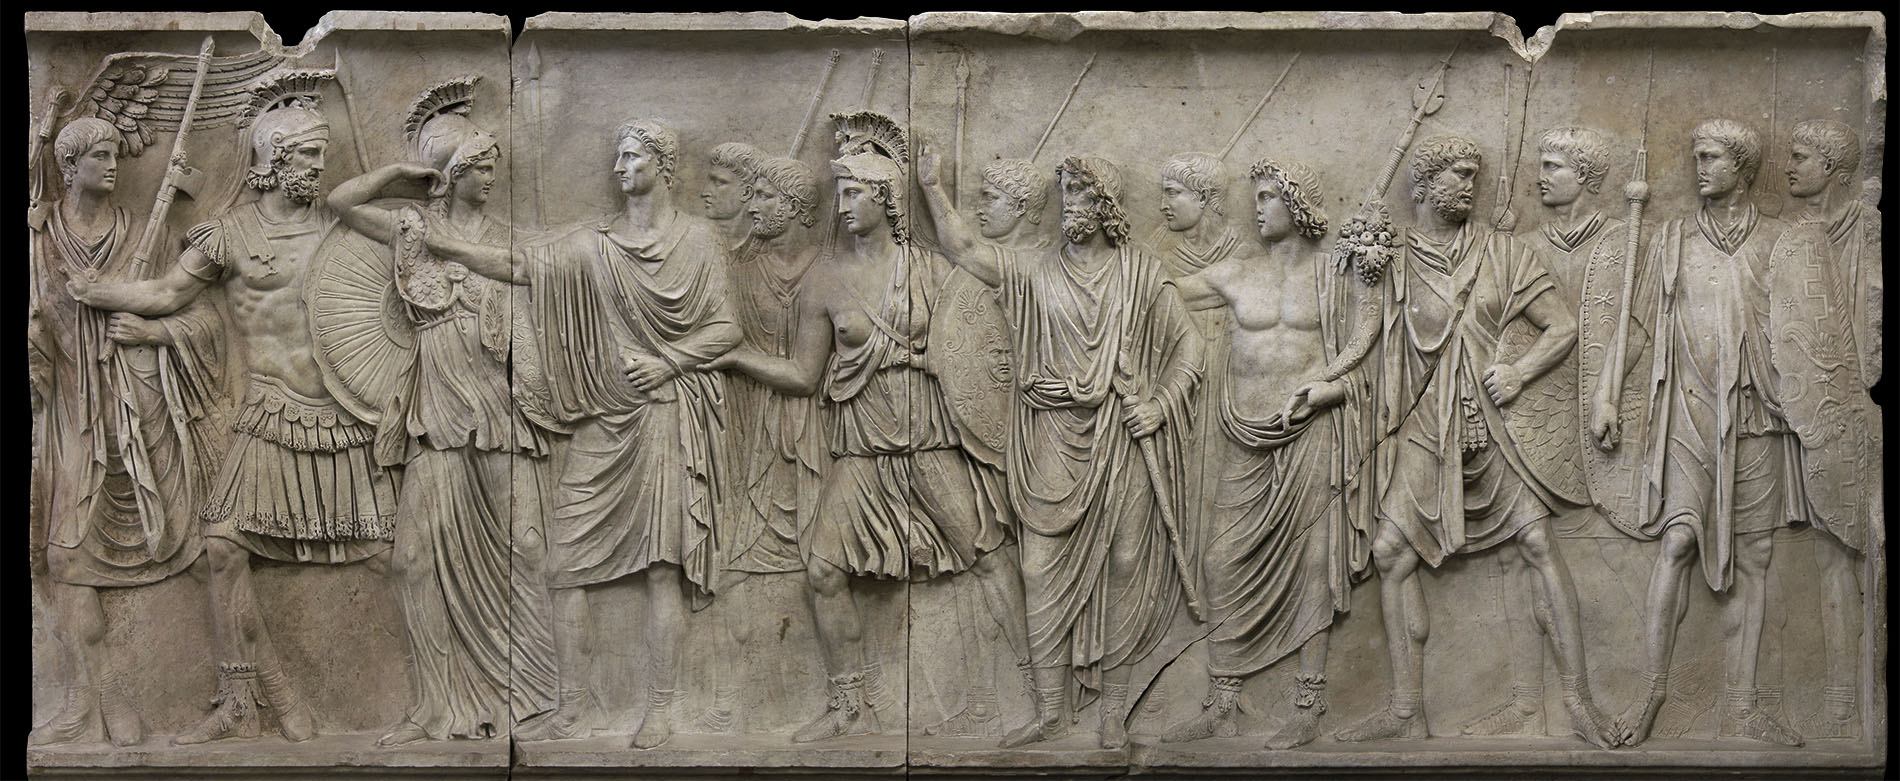 Departure of the emperor from Rome for a military campain (profectio). Relief A from Palazzo Cancelleria in Rome. Luna marble. 81—96 CE.  Rome, Vatican Museums, Gregorian Profane Museum